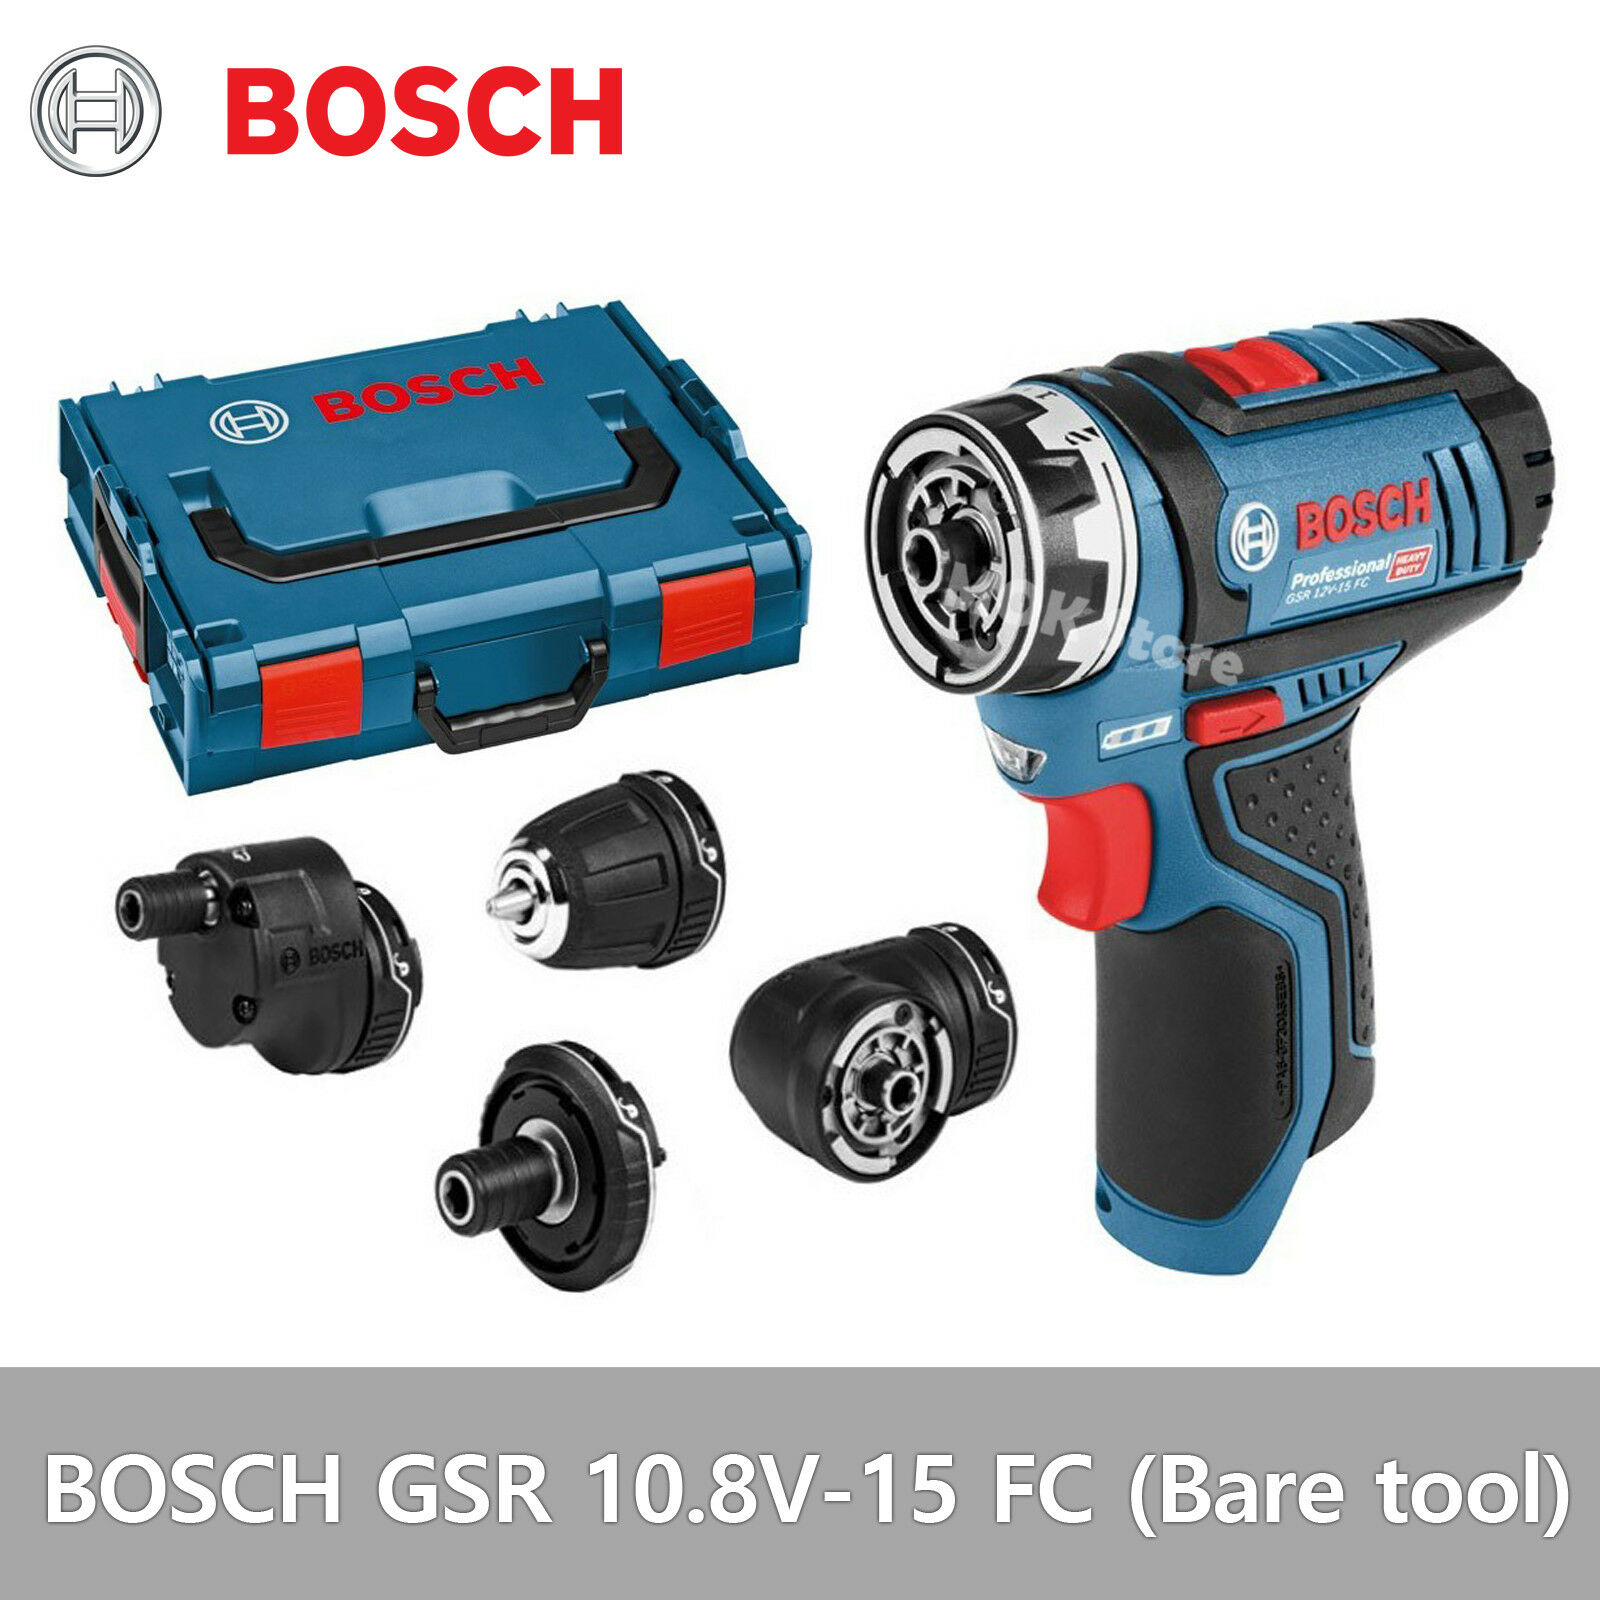 bosch gsr 10 8v 15 fc professional drill driver bare tool body free fedex ebay. Black Bedroom Furniture Sets. Home Design Ideas